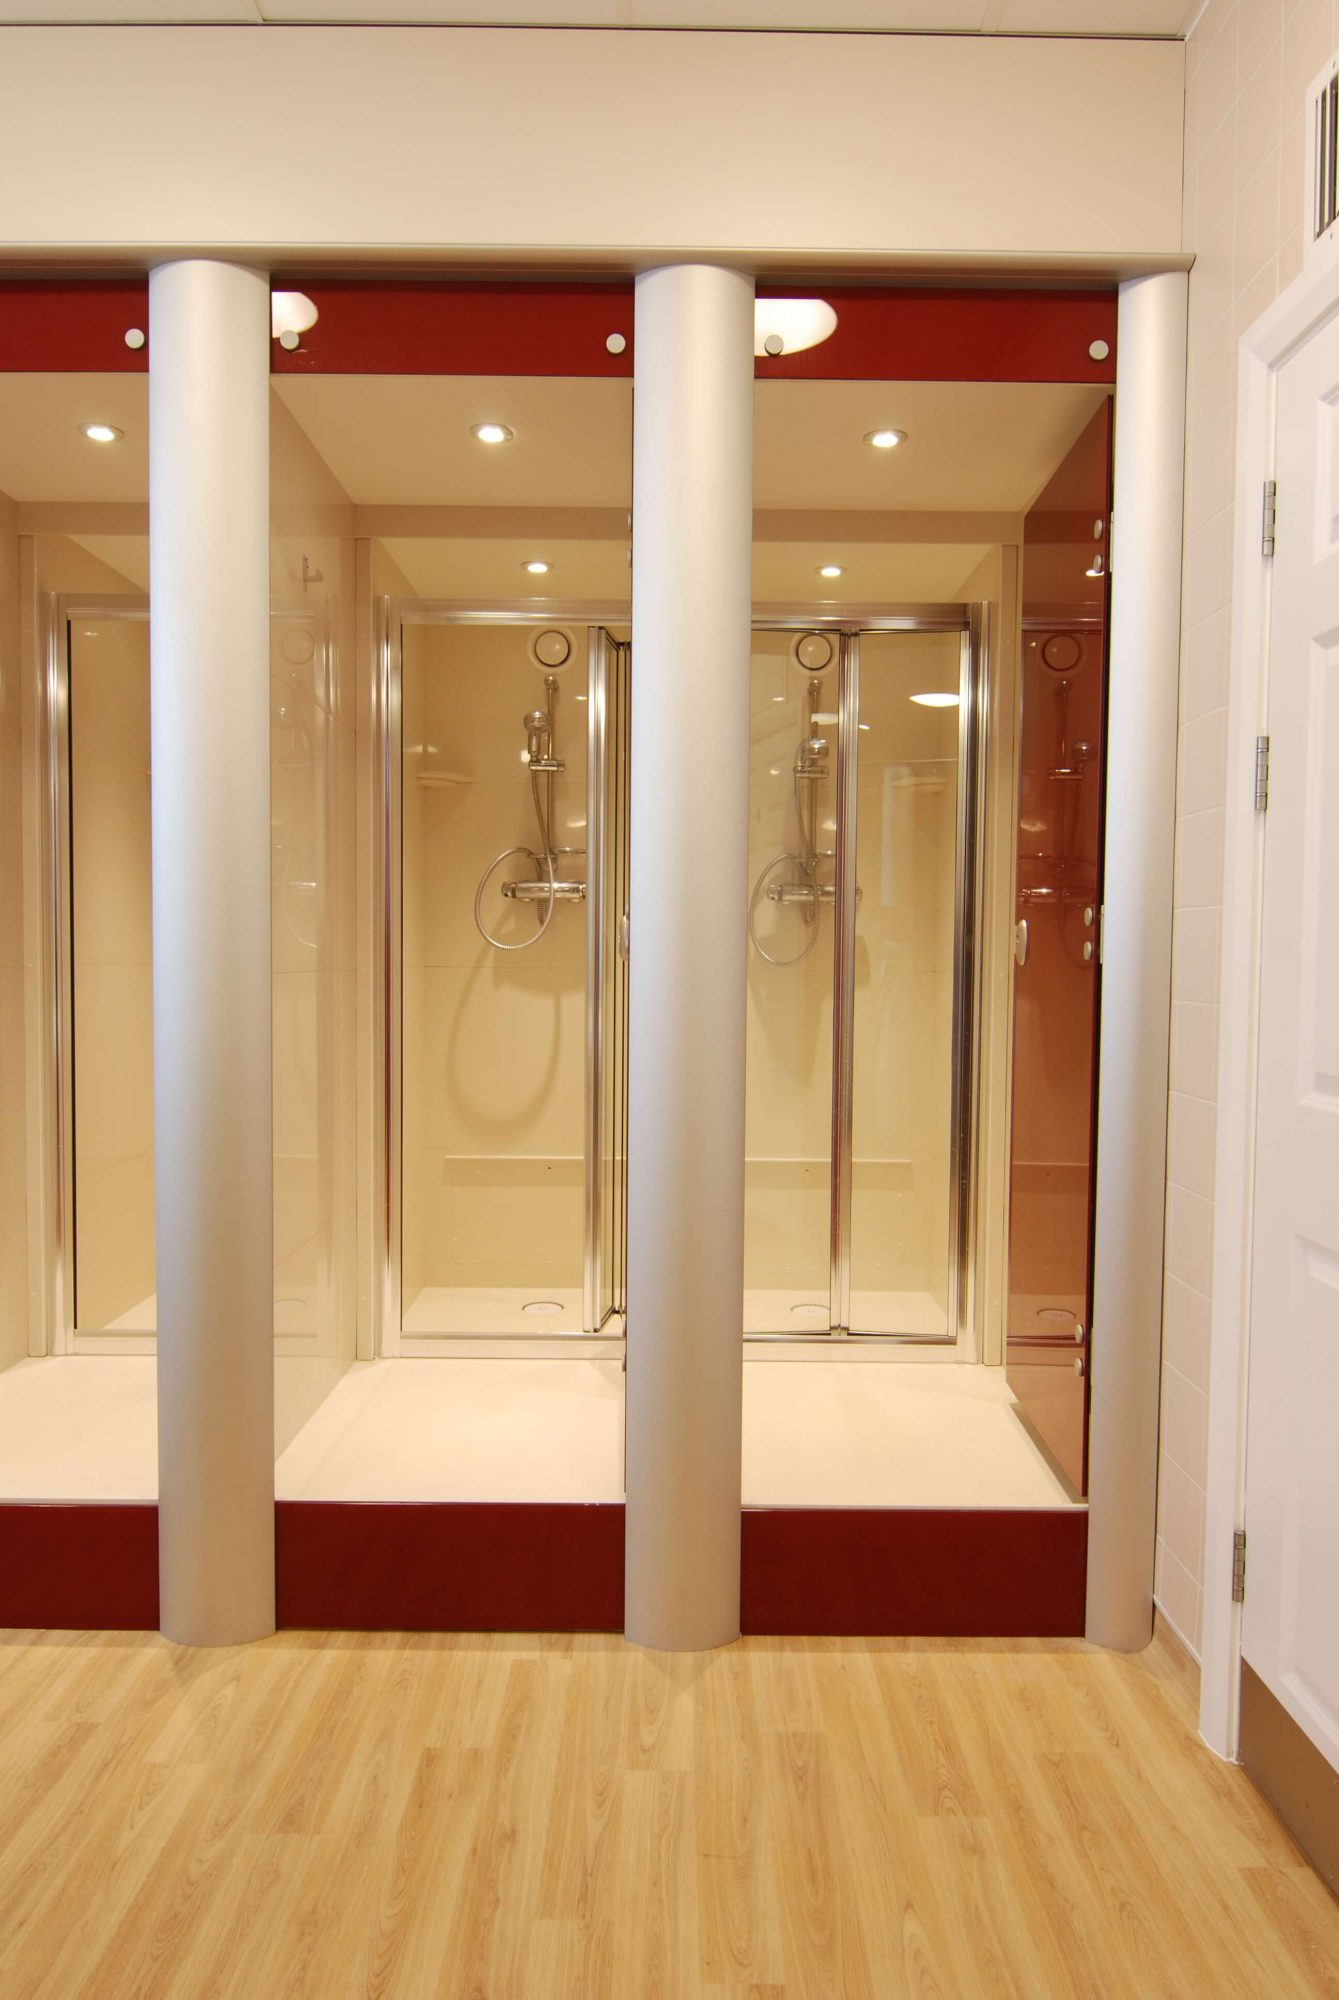 Queenswood School_shower pods2